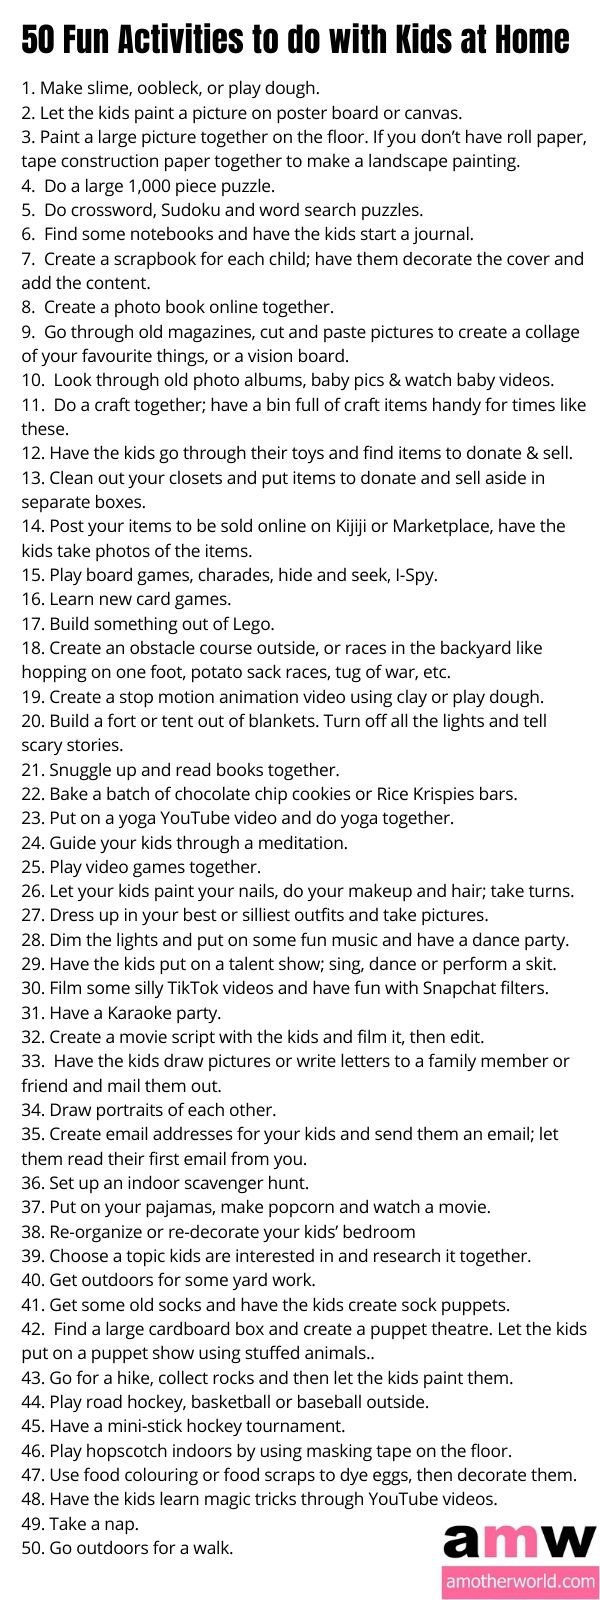 50 Fun Activities to do with Kids at Home - amotherworld.com